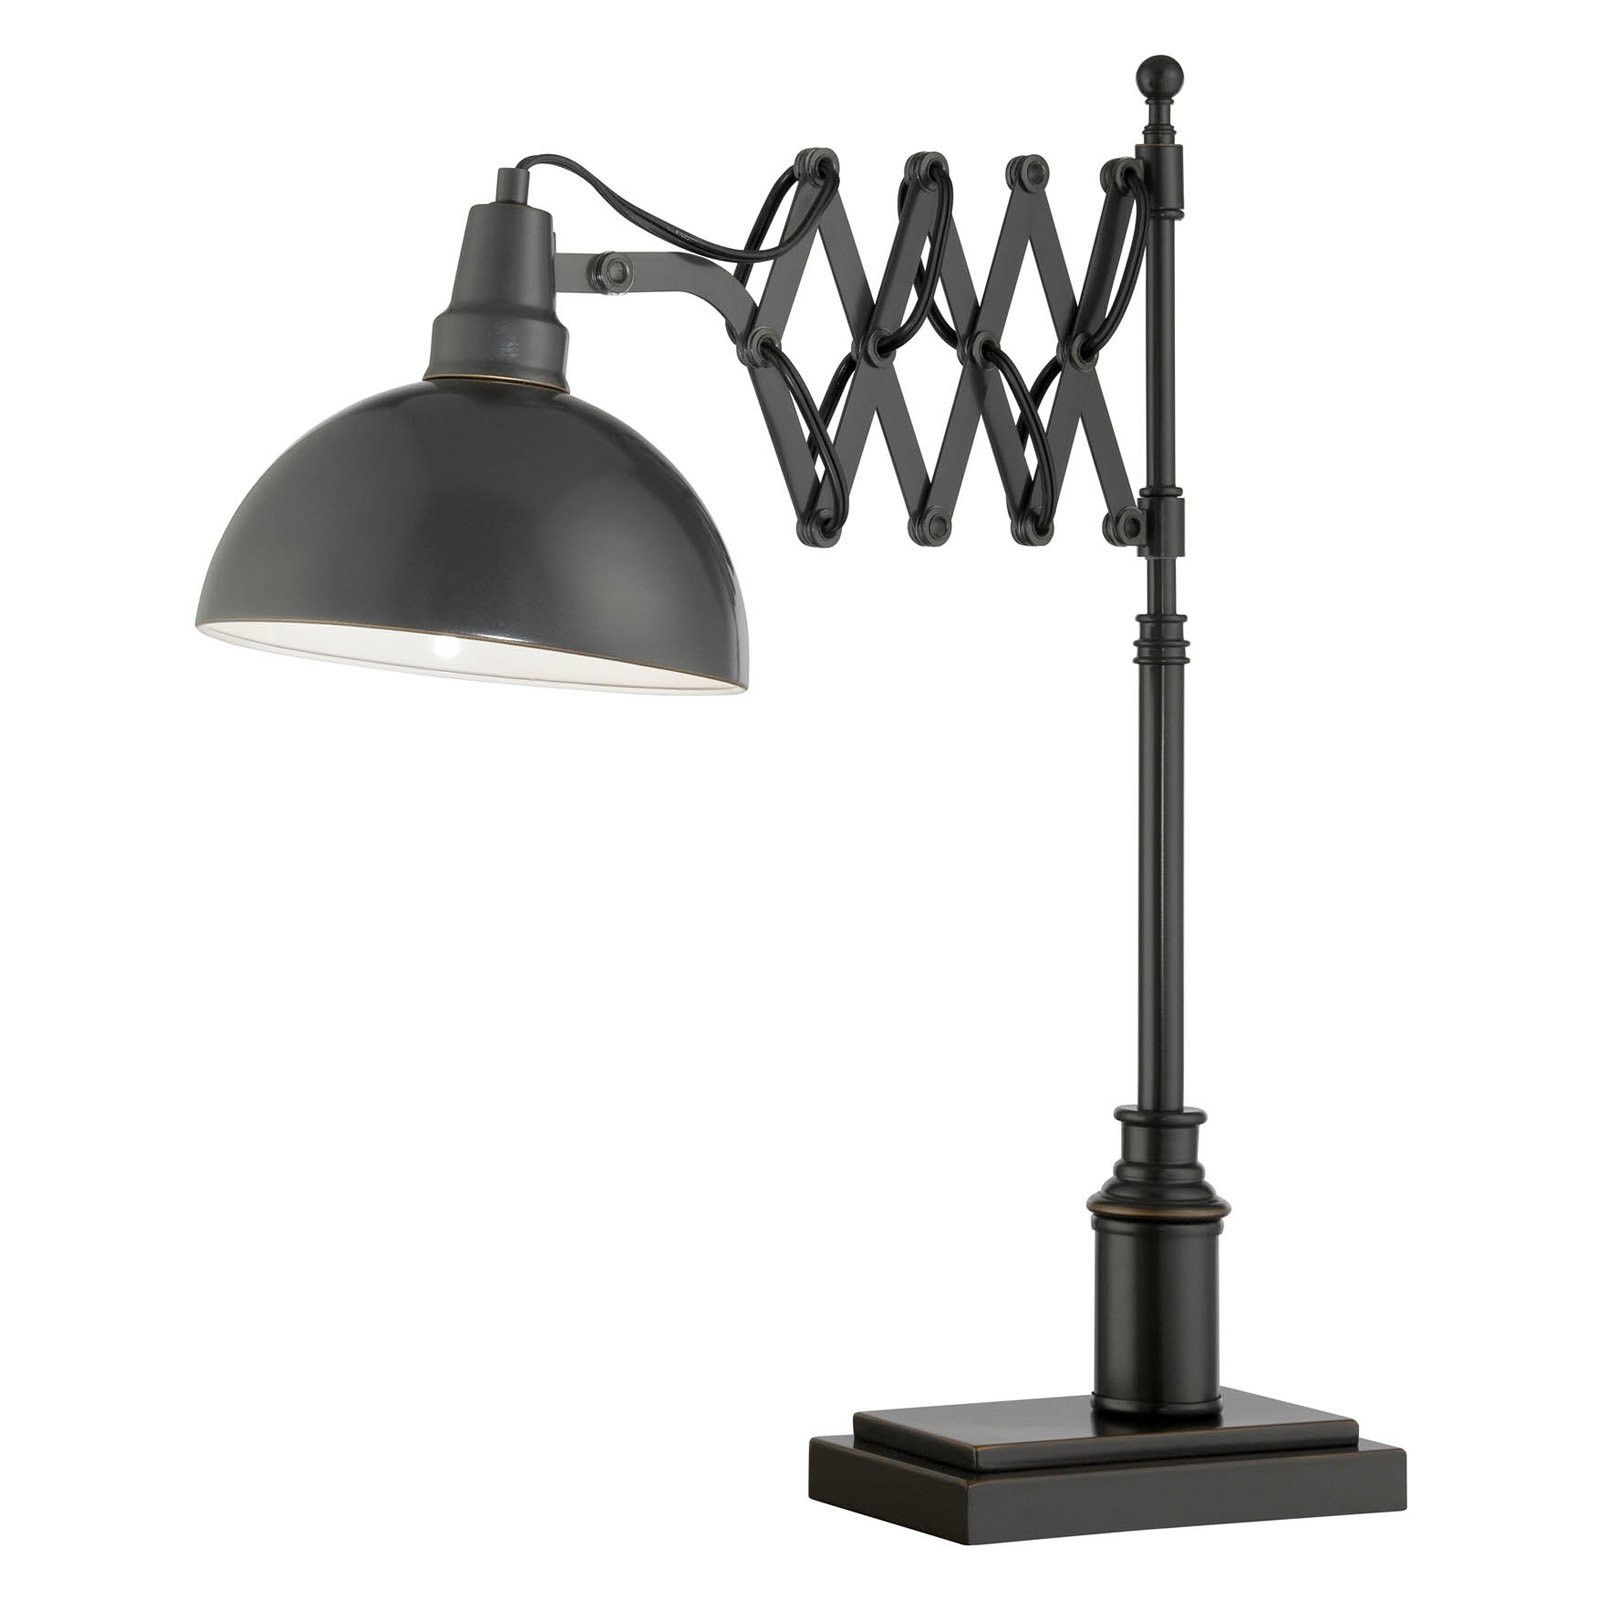 Best ideas about Staples Desk Lamps . Save or Pin Table Lamp Design Desk Lamp Staples Home fice Now.